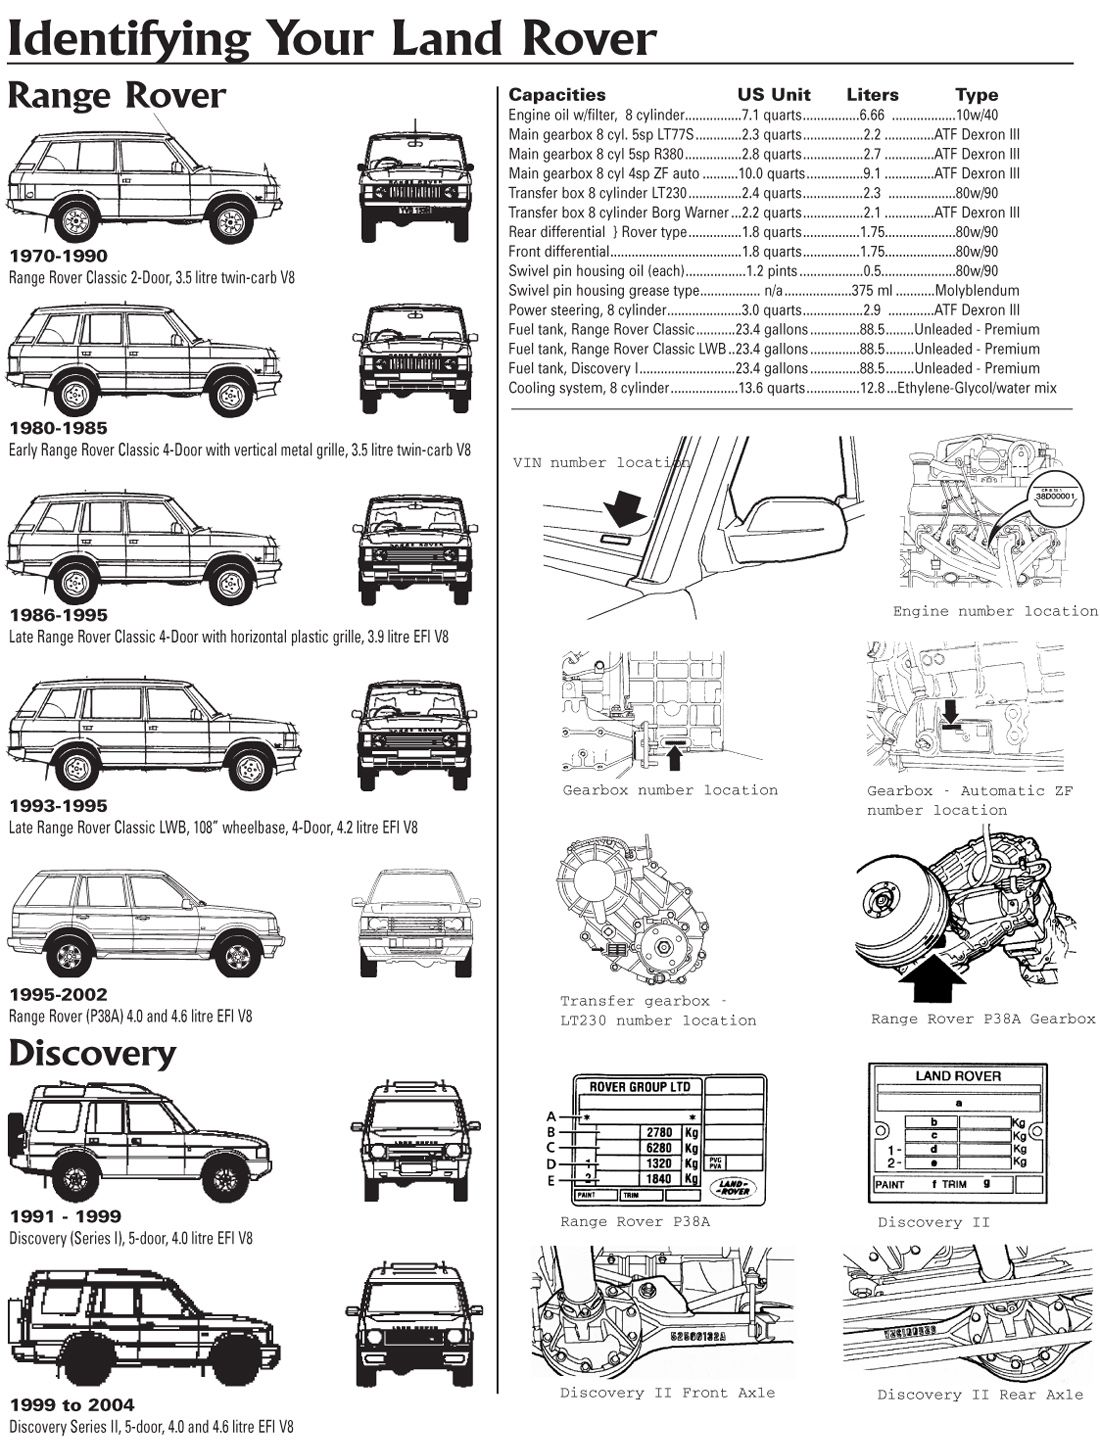 land rover discovery parts diagram conti 150cc quad bike wiring pictures to pin on